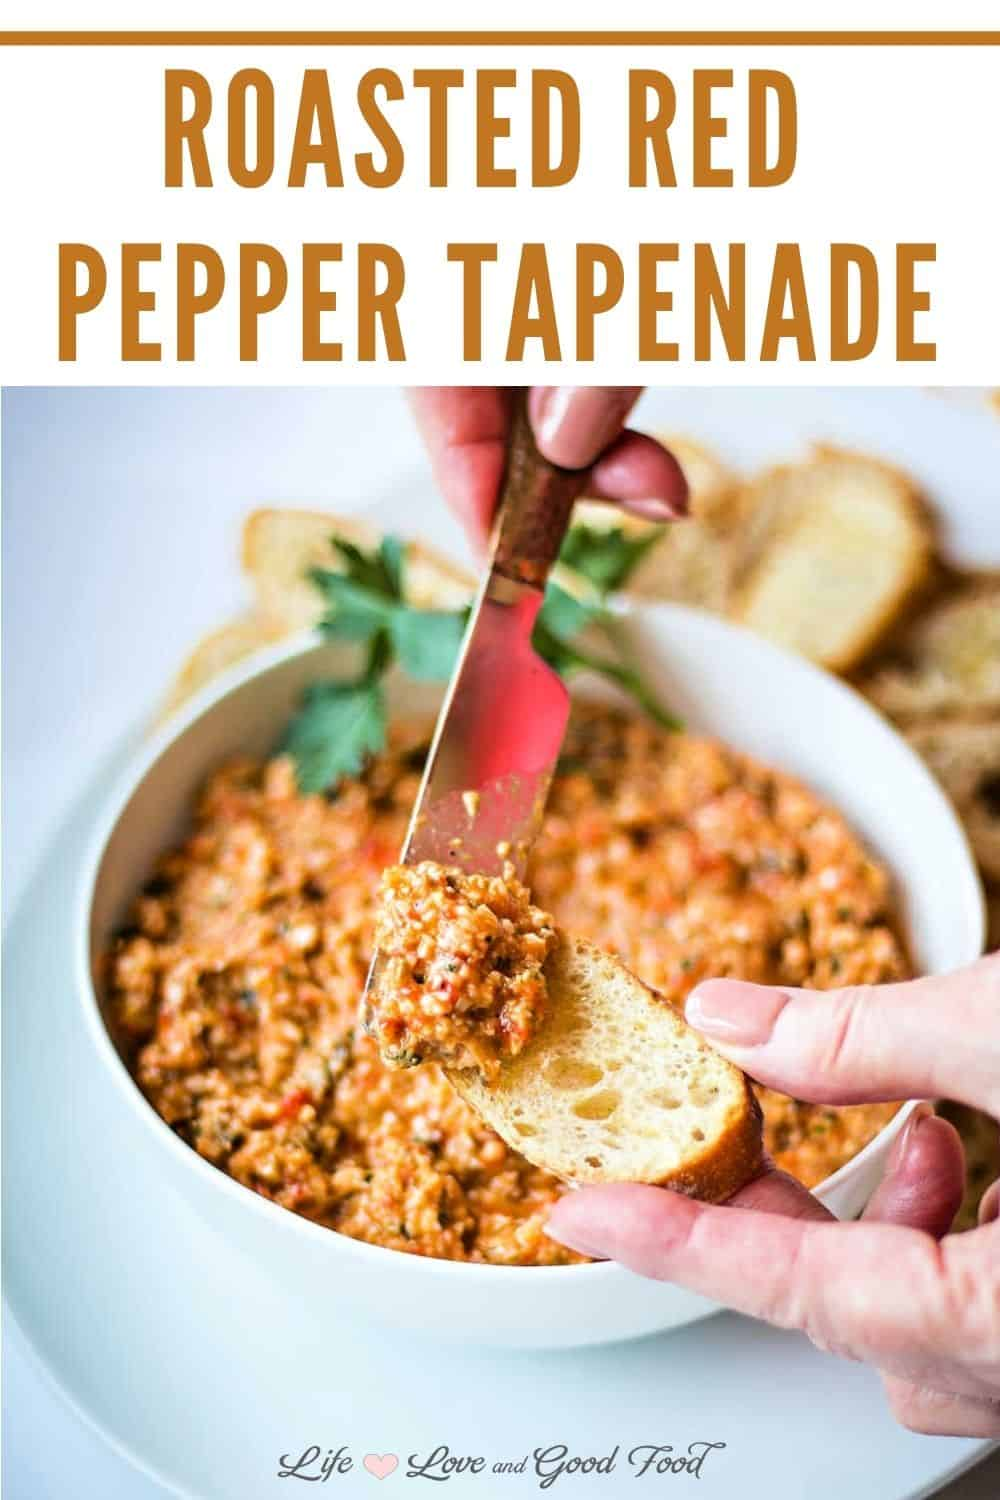 Roasted Red Pepper and Artichoke Tapenade, or roasted red pepper dip, is a tasty 10-minute appetizer bursting with Mediterranean flavors. Simply combine roasted red bell peppers and artichoke hearts with capers, Parmesan cheese, and other seasonings until the mixture is the consistency of an olive tapenade. Roasted Red Pepper and Artichoke Tapenade served with toasted baguette slices, warm pita bread, or crackers makes a deliciously easy party platter.